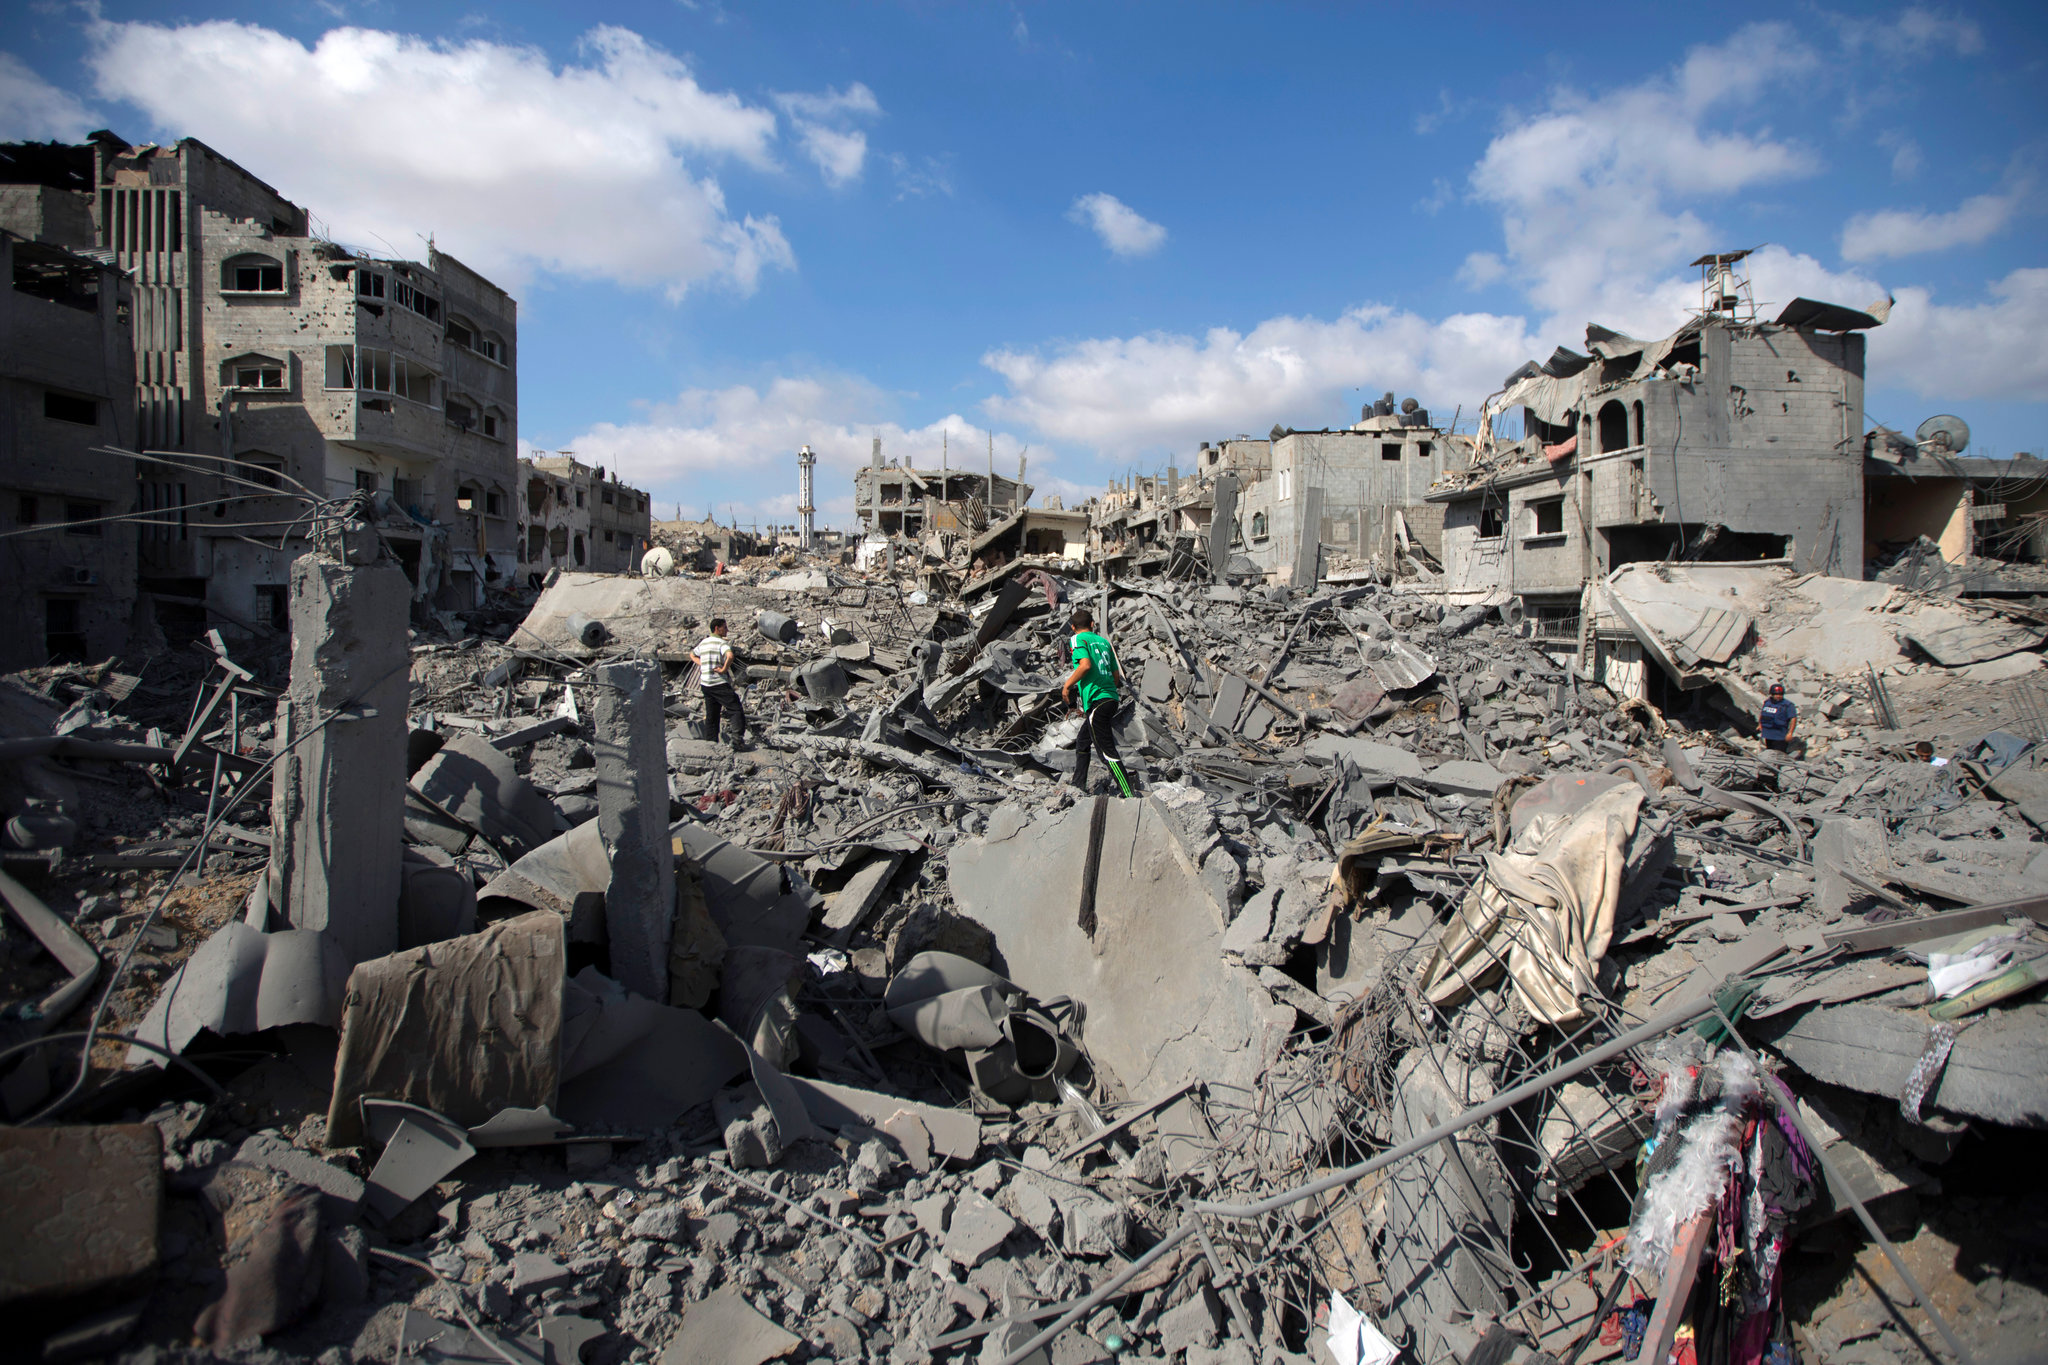 gaza photo essay The onslaught in gaza and the mh17 crash scene in ukraine just like the guardian but i was shocked again to see them published on timecom as a photo essay.